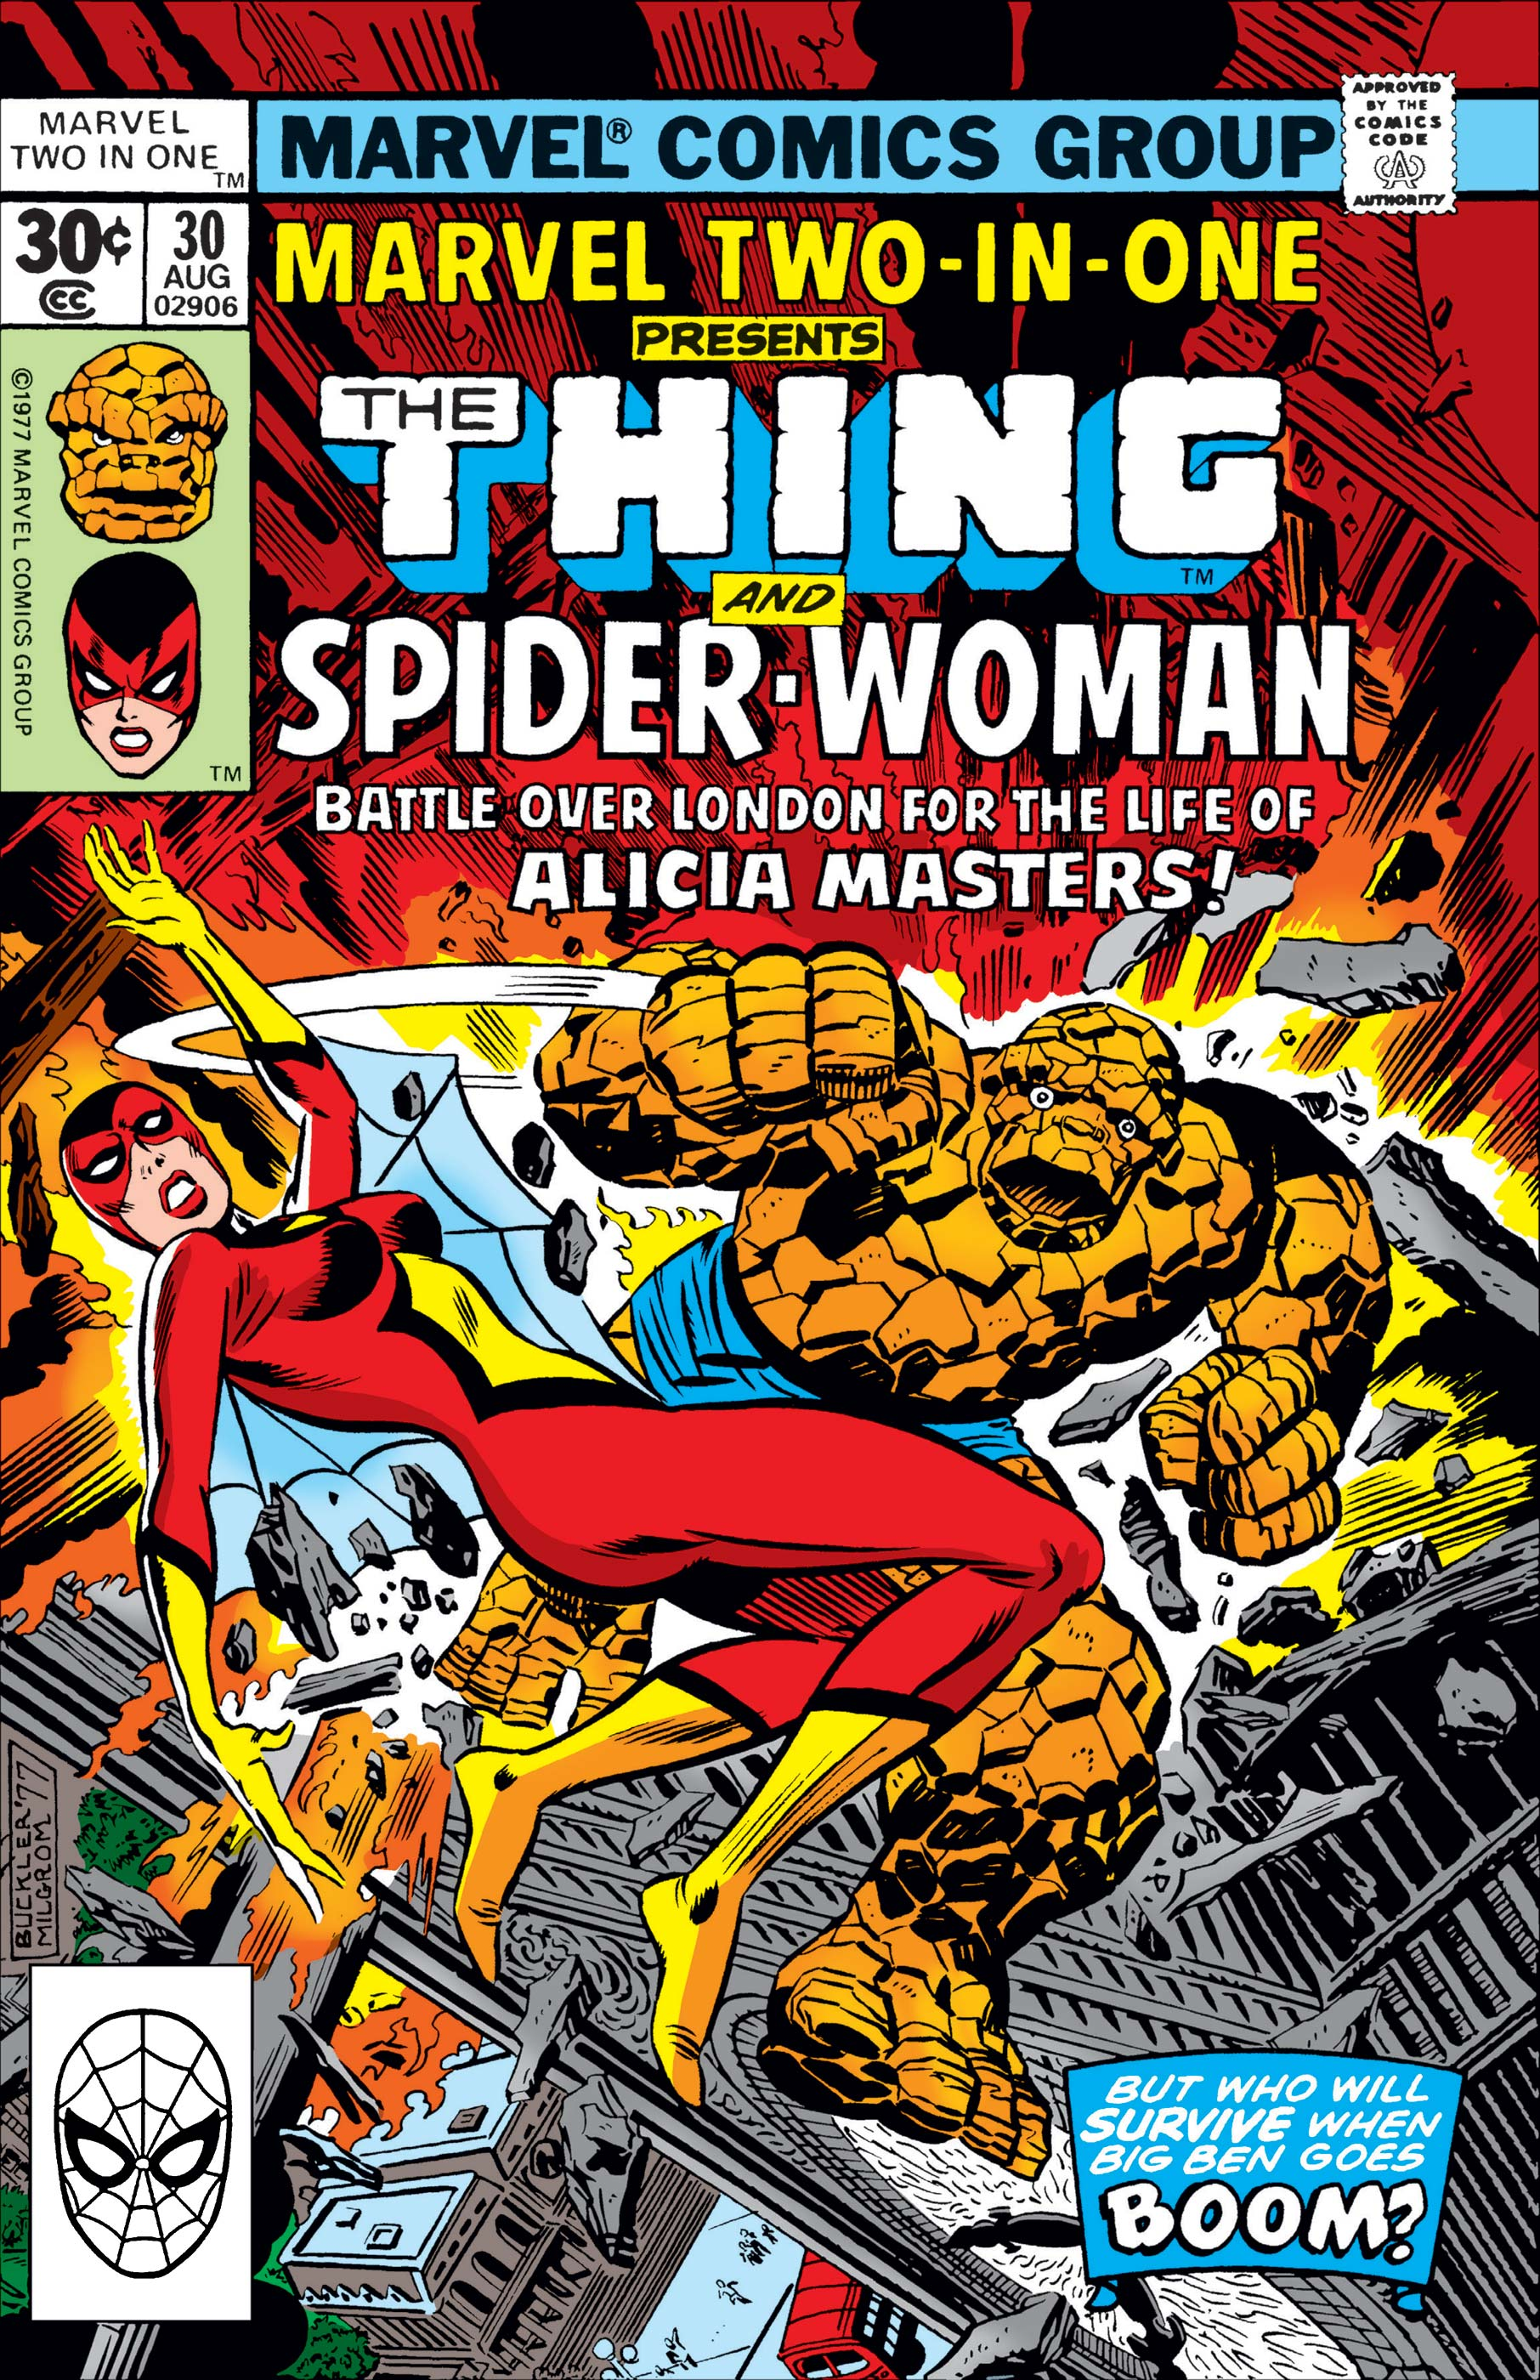 Marvel Two-in-One (1974) #30